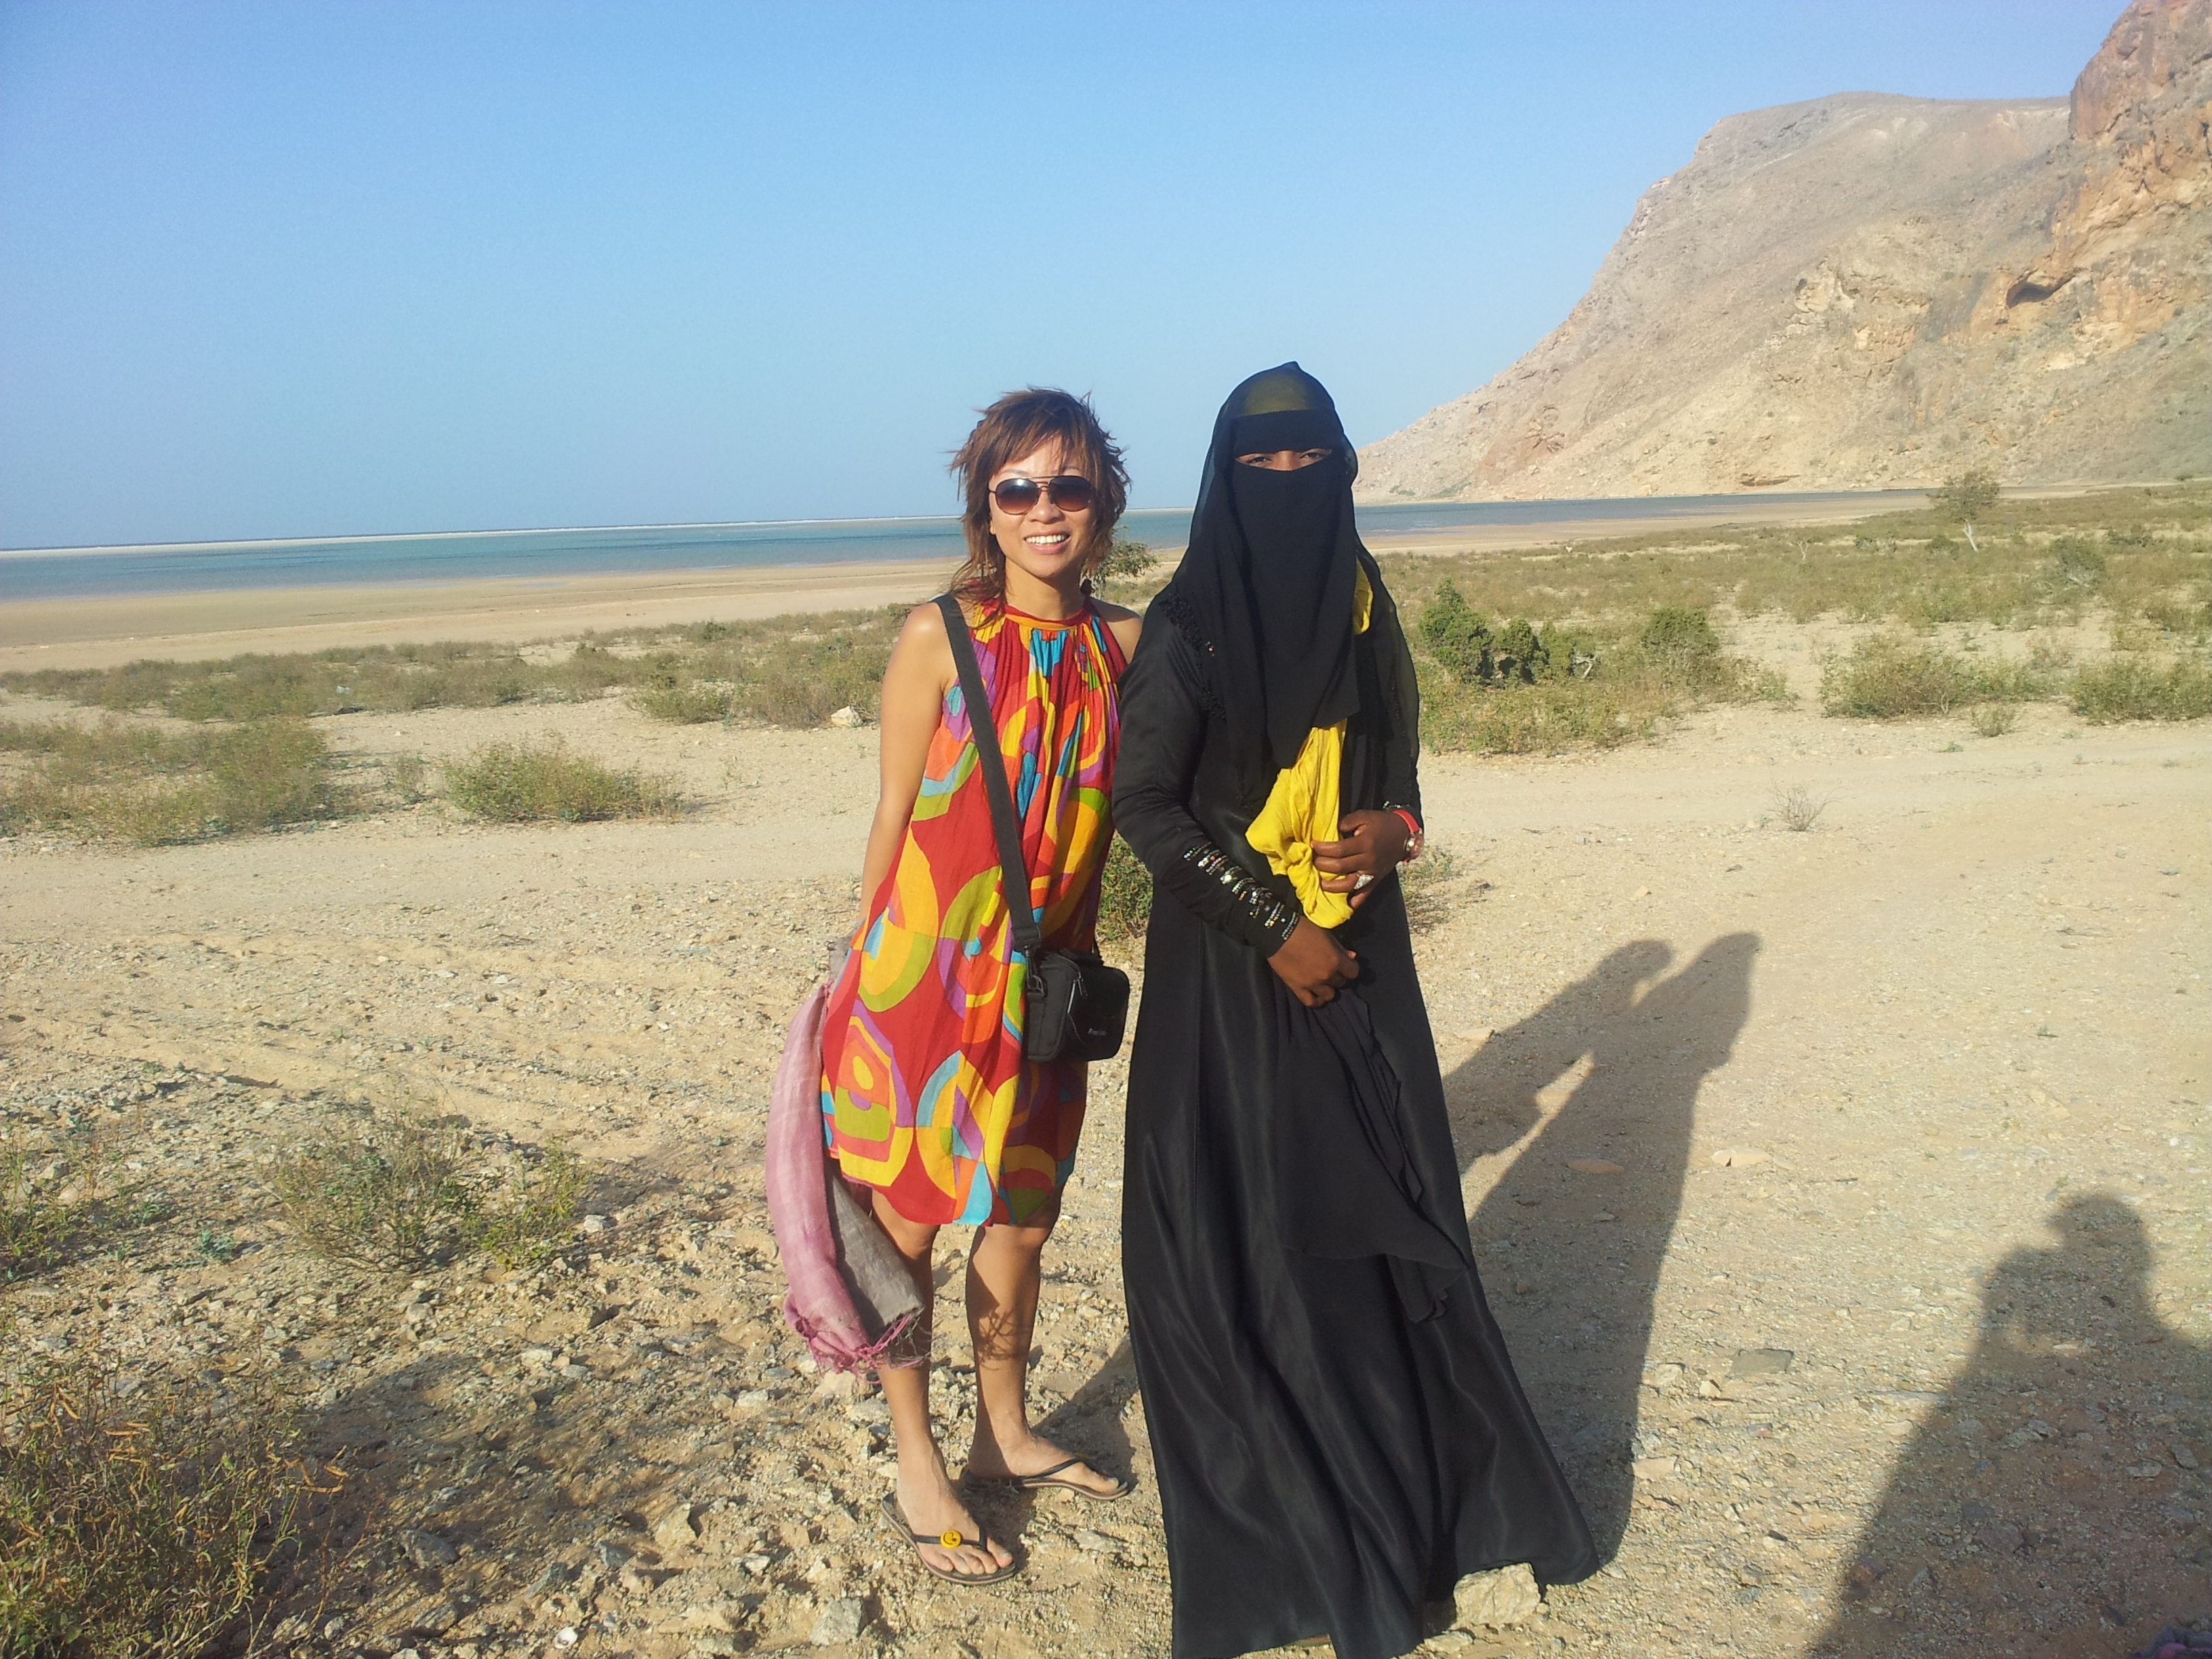 middle island muslim girl personals I had experience and also know some girls who dated arab guys and to don't have serious relationship with muslim guys donation to the middle east.